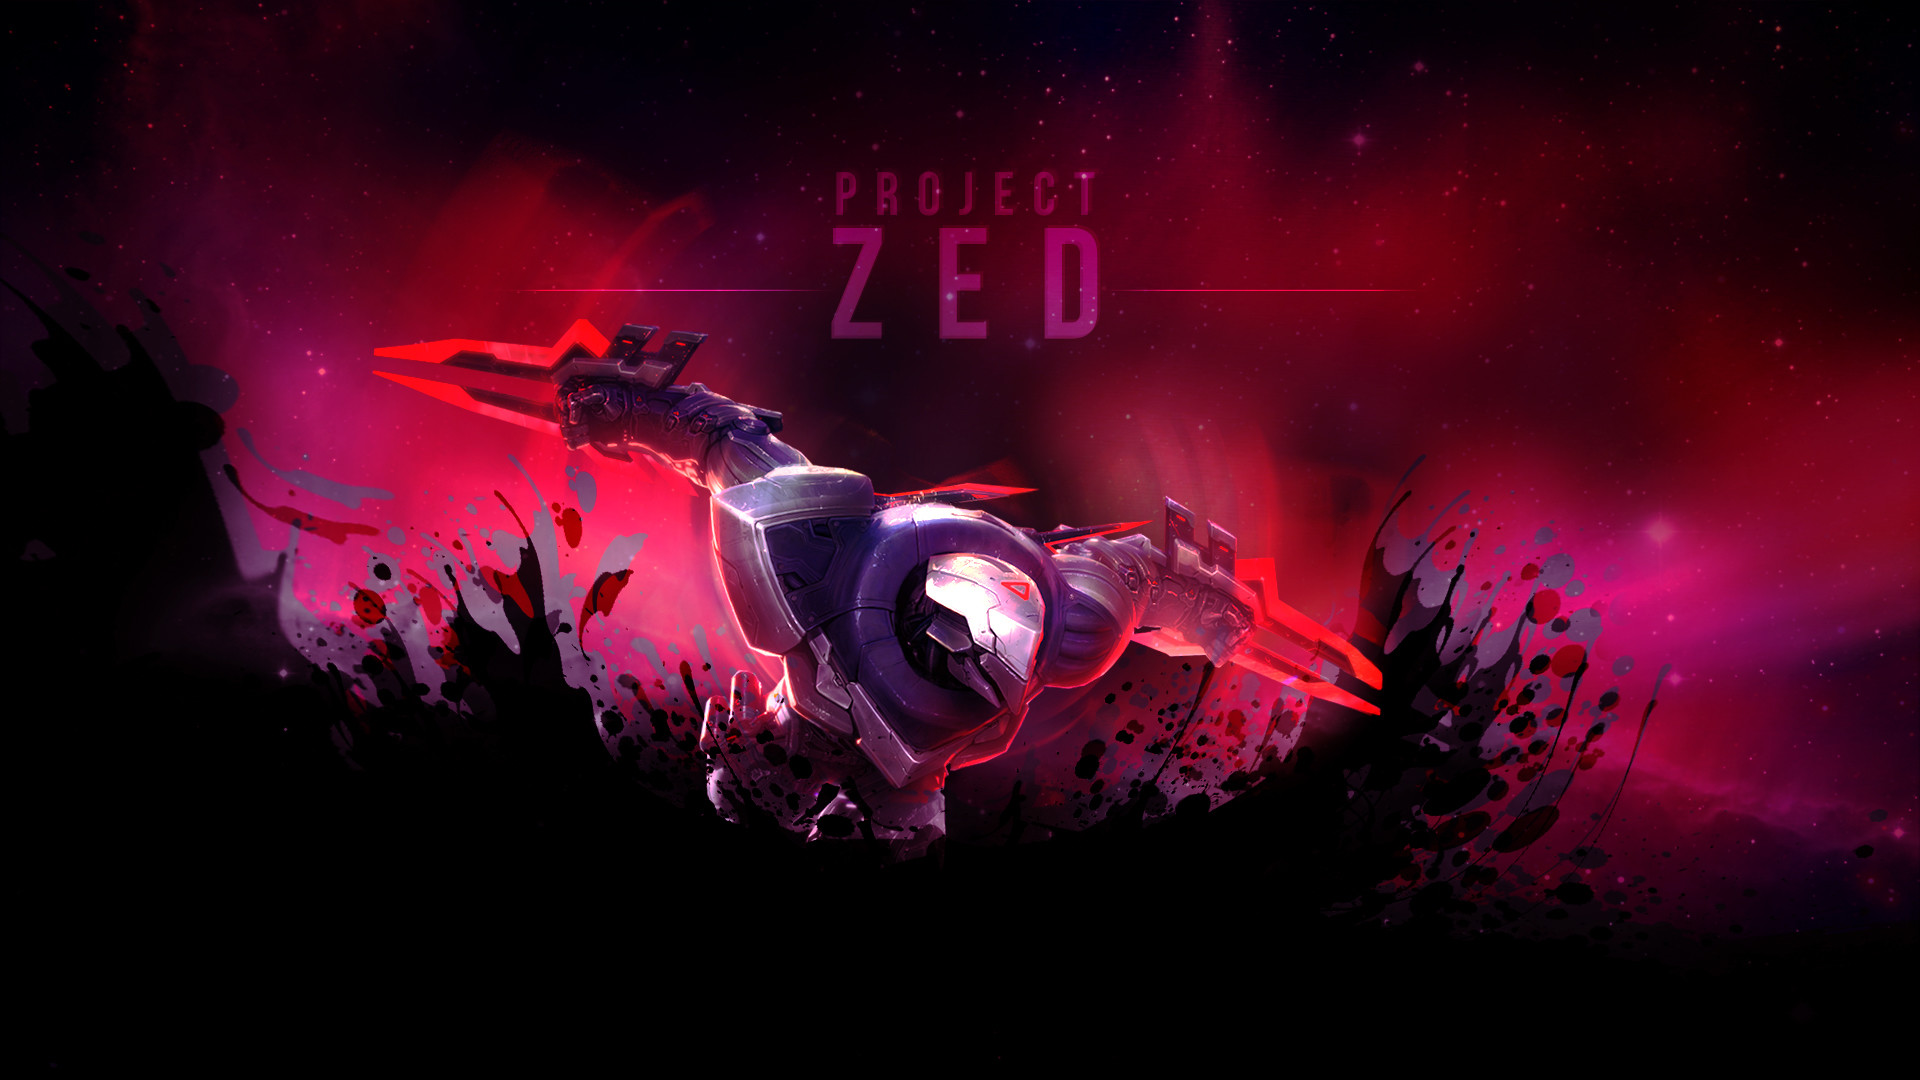 Res: 1920x1080, PROJECT Zed Wallpaper by DarkunePlays PROJECT Zed Wallpaper by DarkunePlays